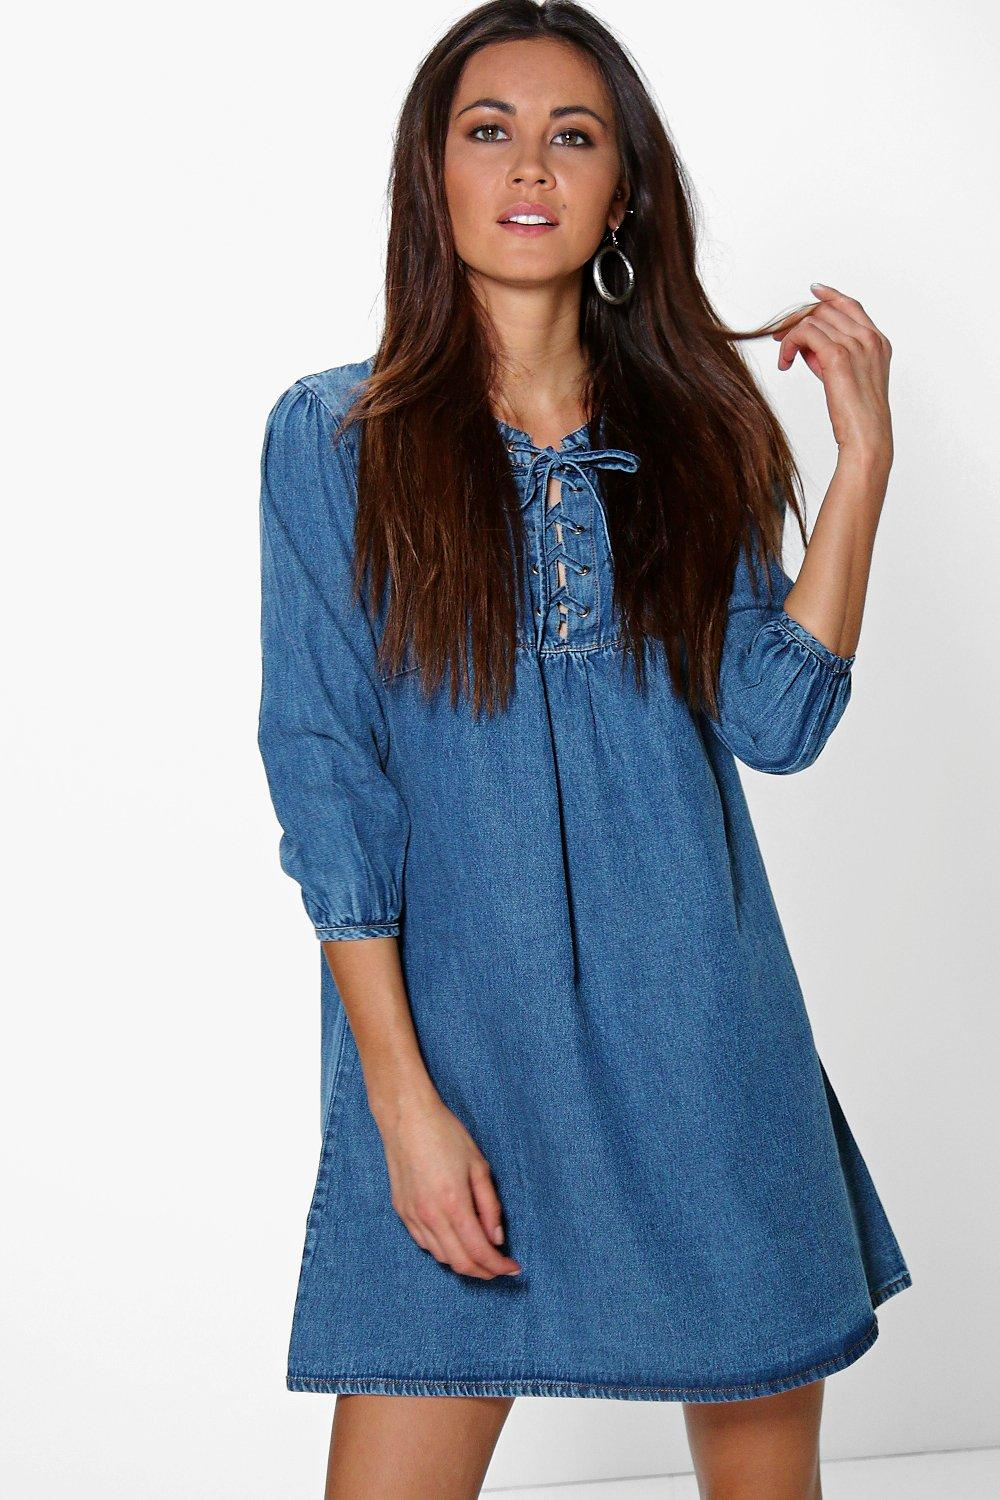 Lisa Smock Style Lace Up Denim Dress